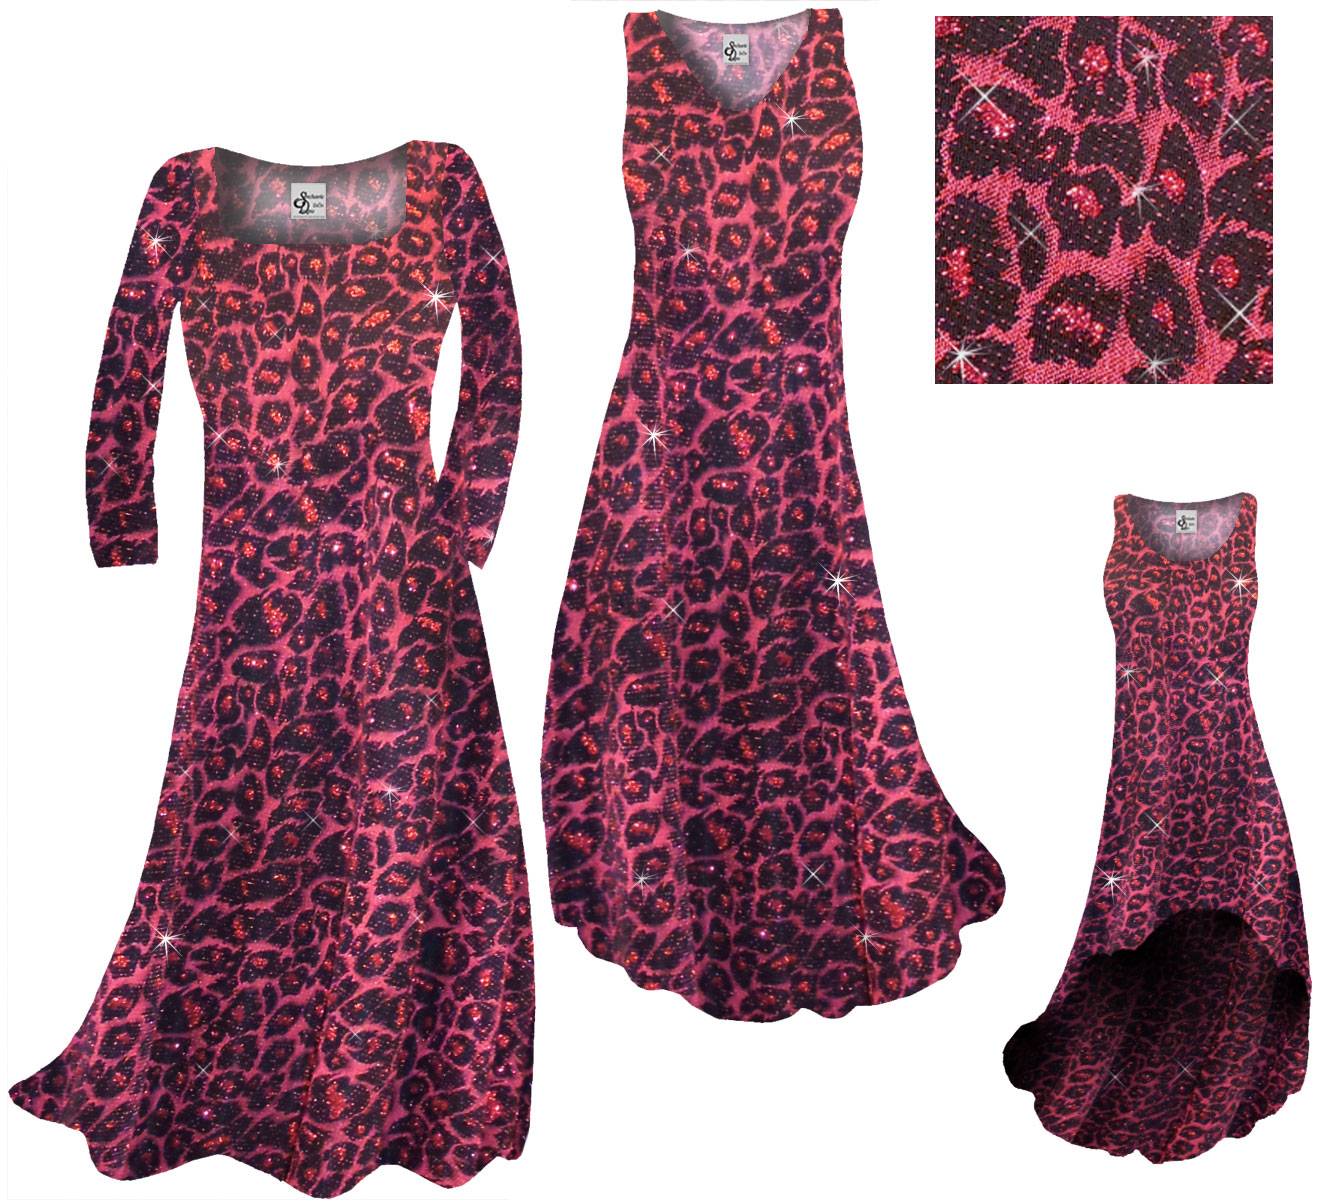 Sold Out Clearance Red With Hot Pink Glittery Leopard Slinky Print